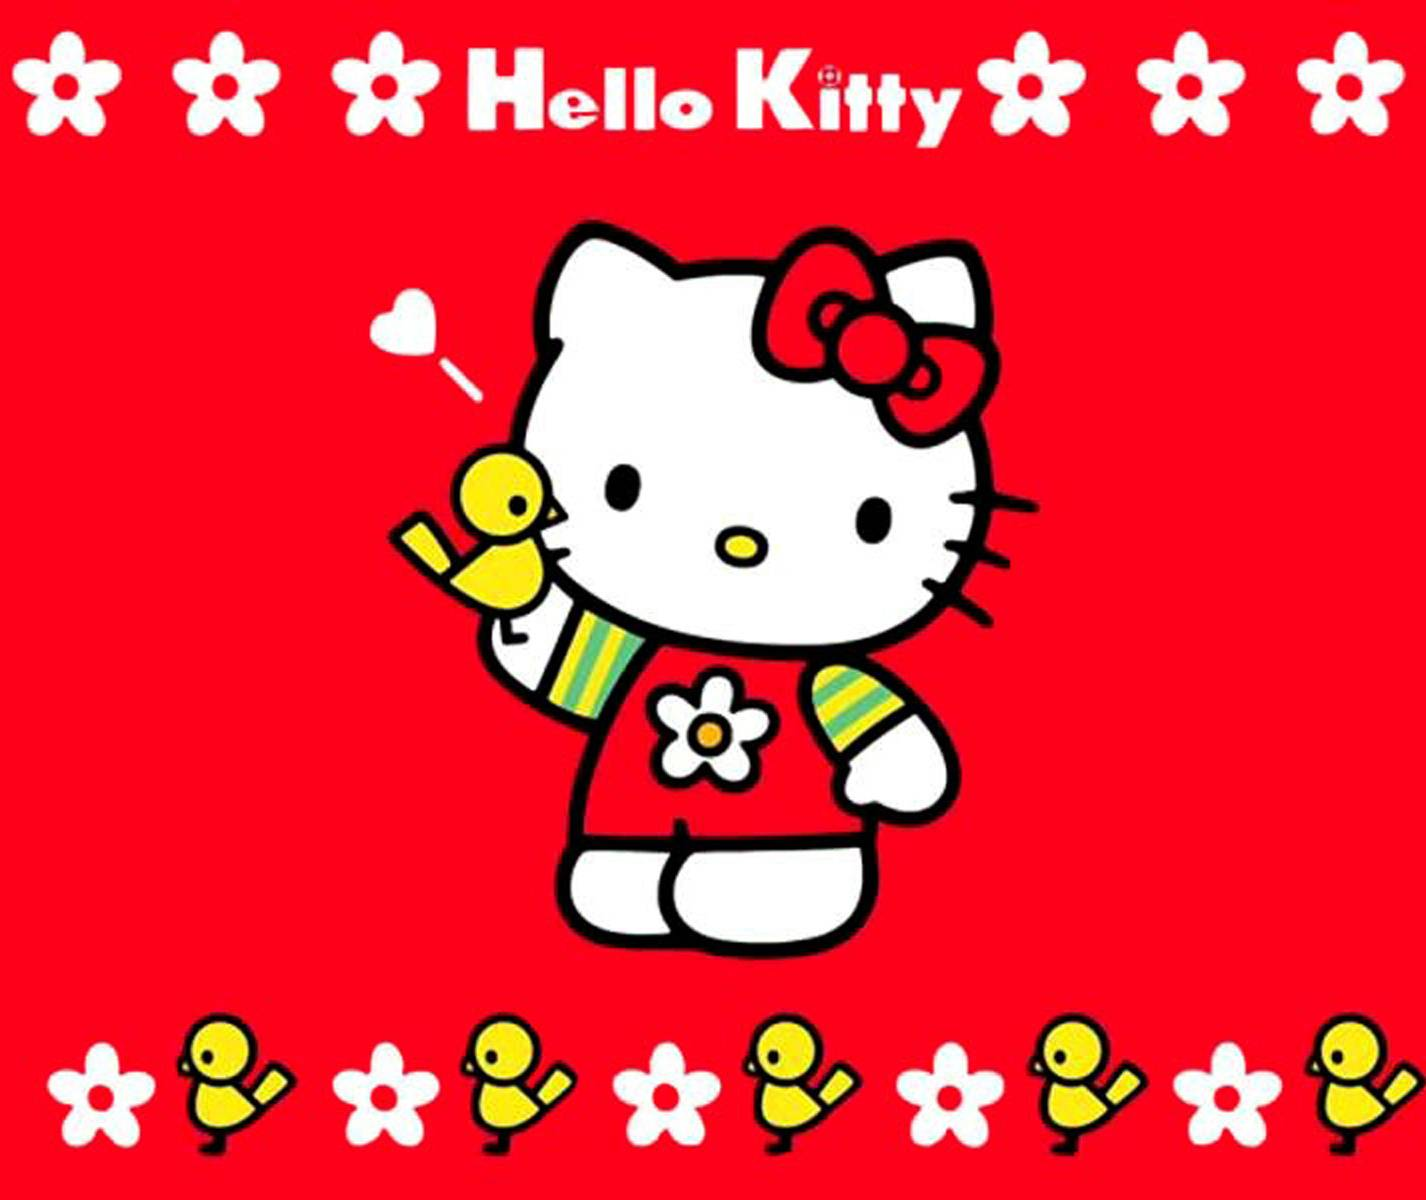 Hello Kitty wallpaper by honey61972 - e6 - Free on ZEDGE™